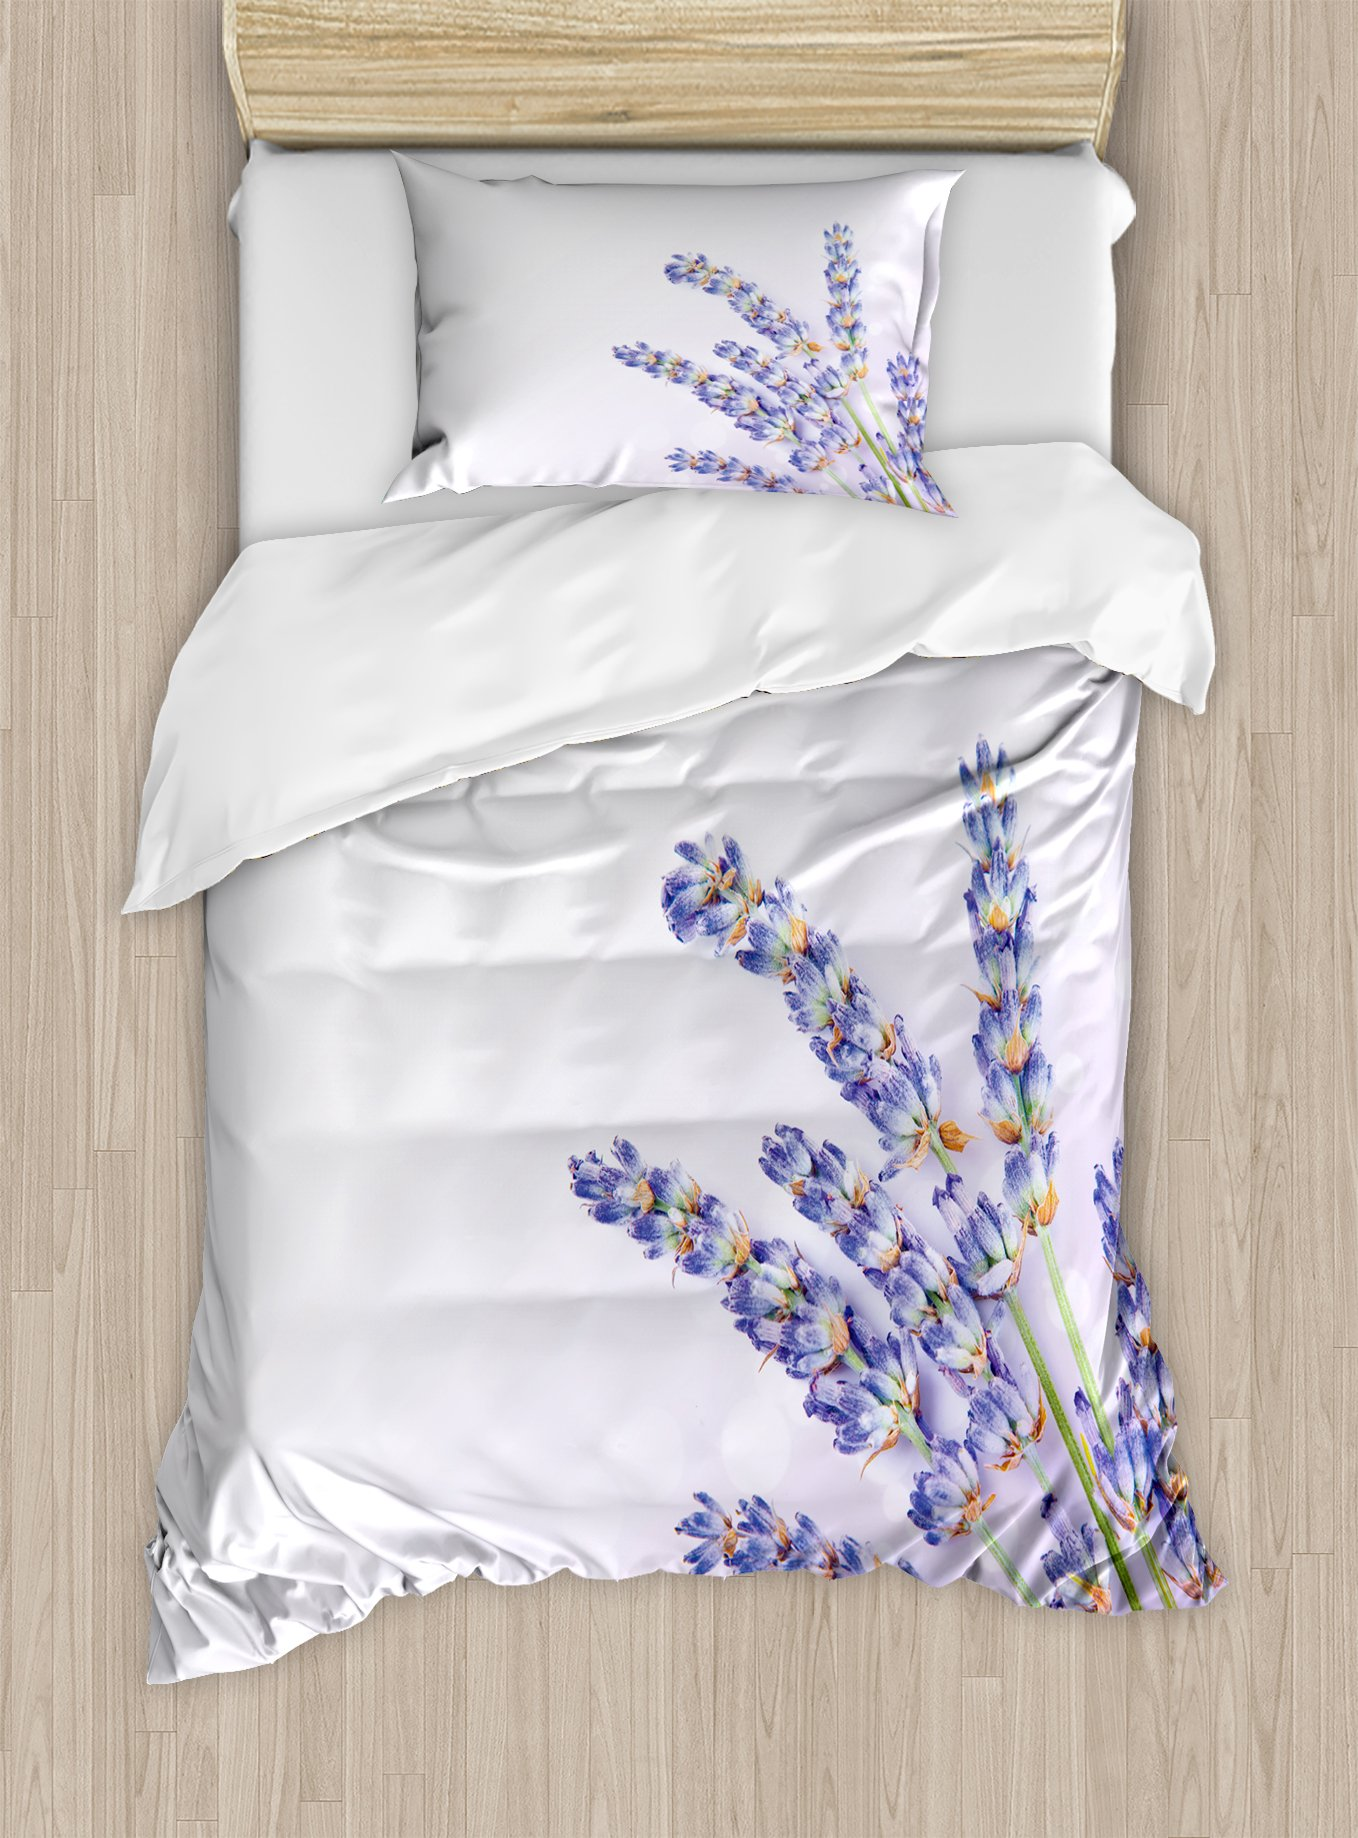 Ambesonne Lavender Duvet Cover Set Twin Size, Little Posy of Medicinal Herb Fresh Plant of Purple Flower Spa Aromatheraphy Organic, Decorative 2 Piece Bedding Set with 1 Pillow Sham, Lavander